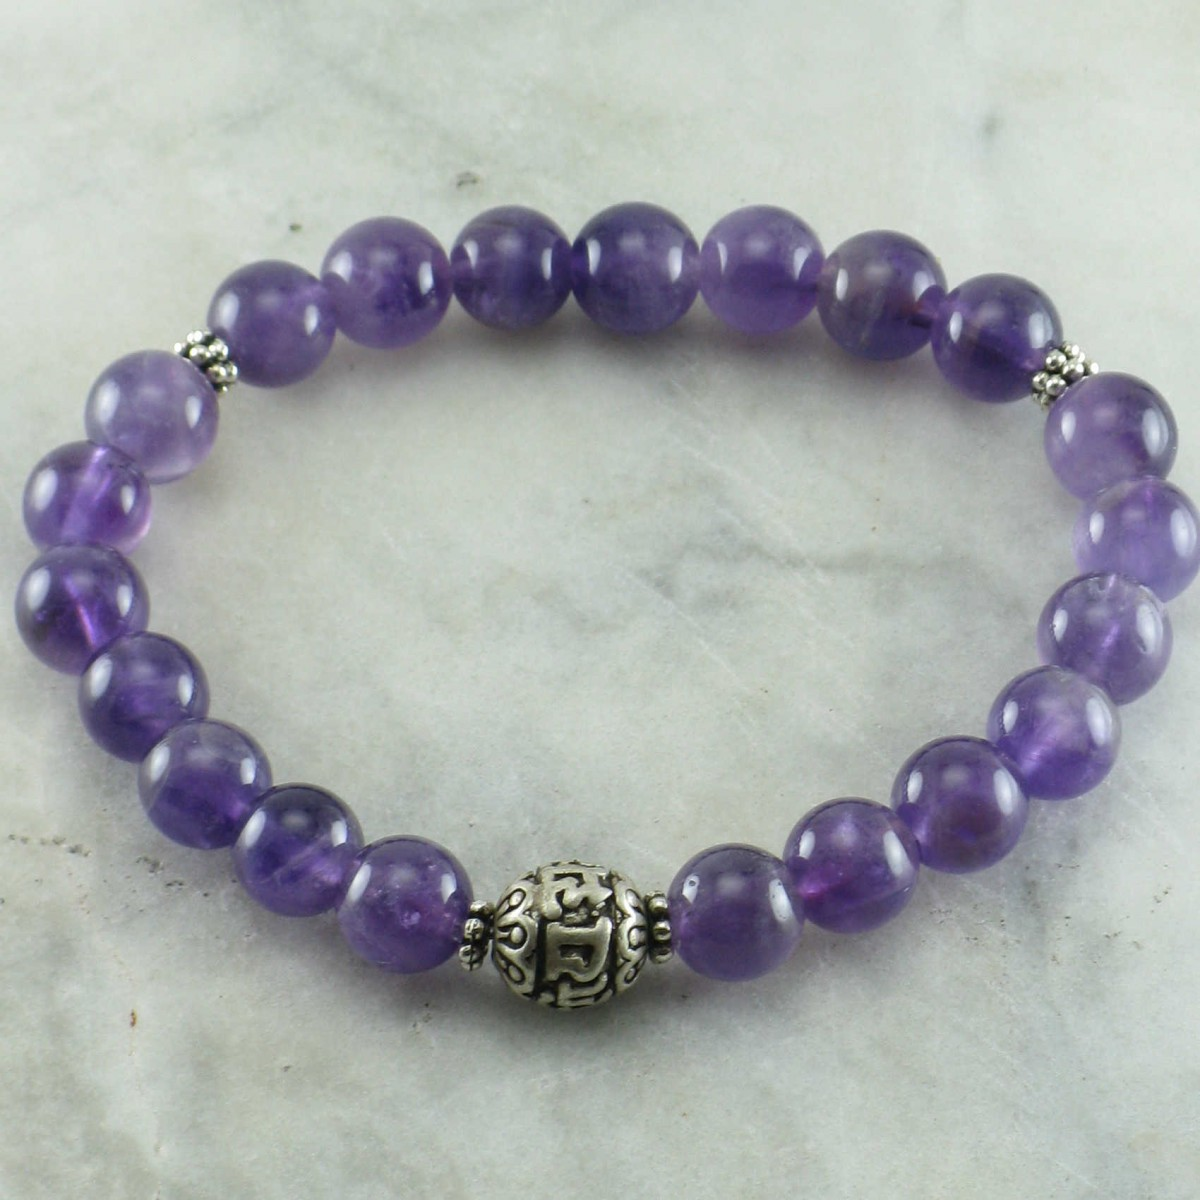 Wisdom_Mala_Bracelet_21_Amethyst_Mala_Beads_OM_Mani_Padme_Hum_Ayurvedic_Pitta